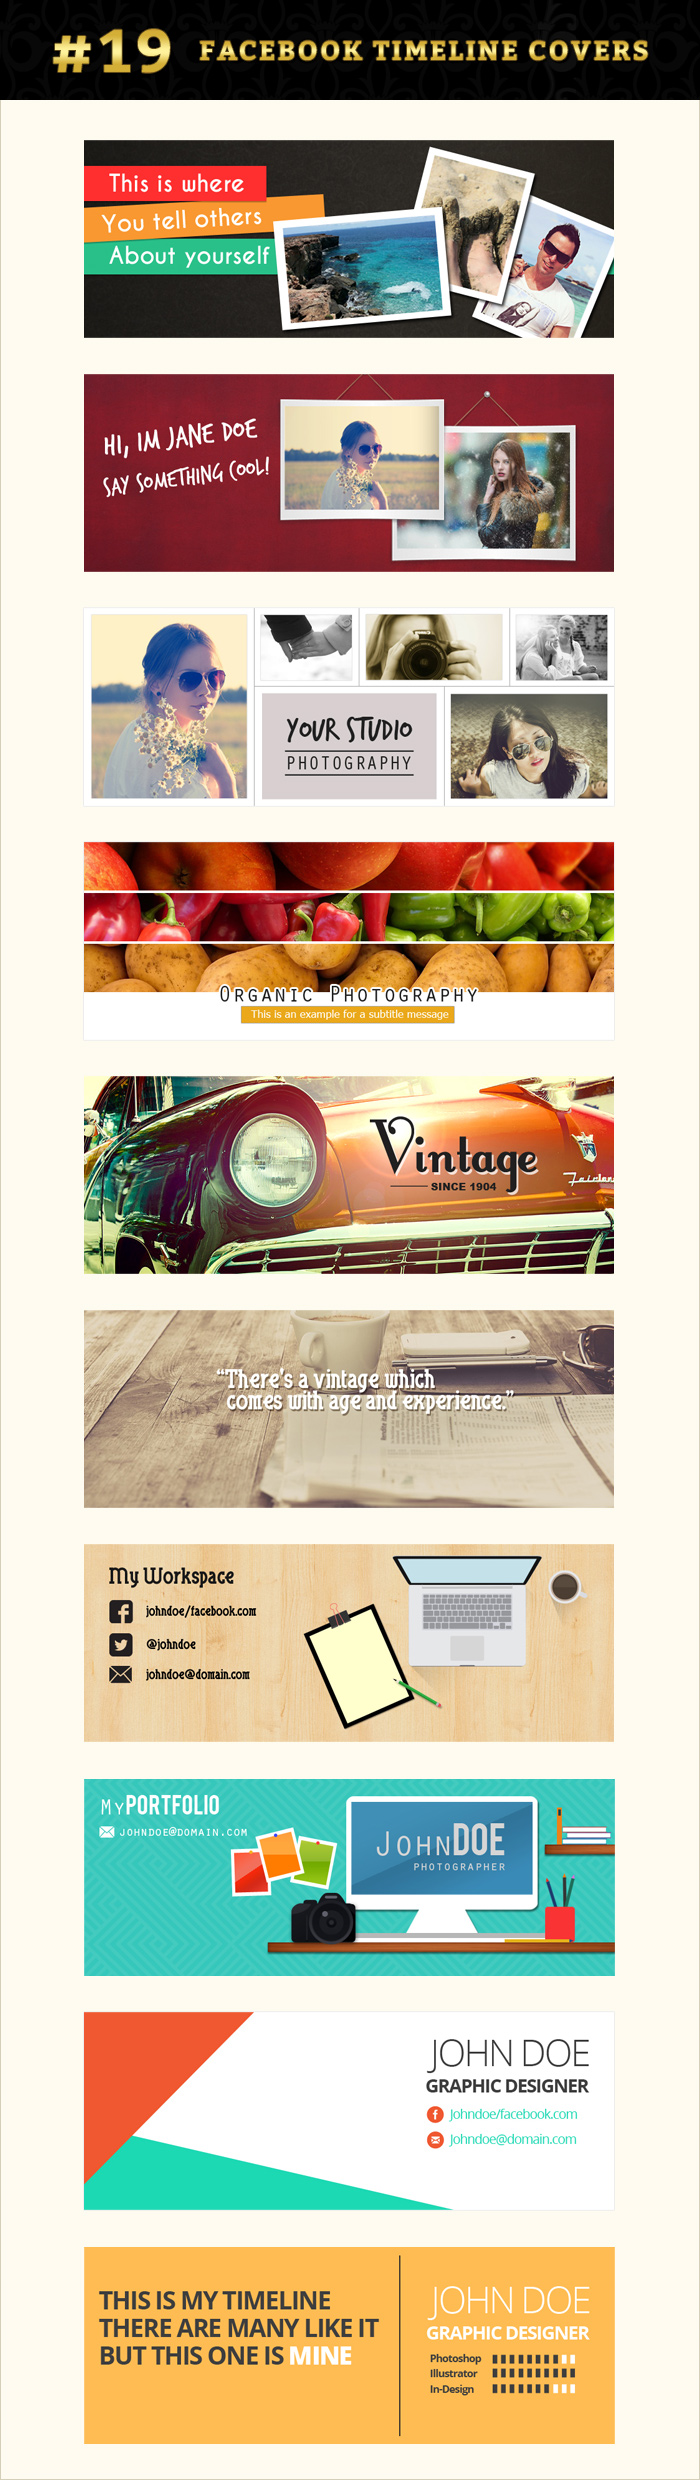 Facebook timeline cover graphics